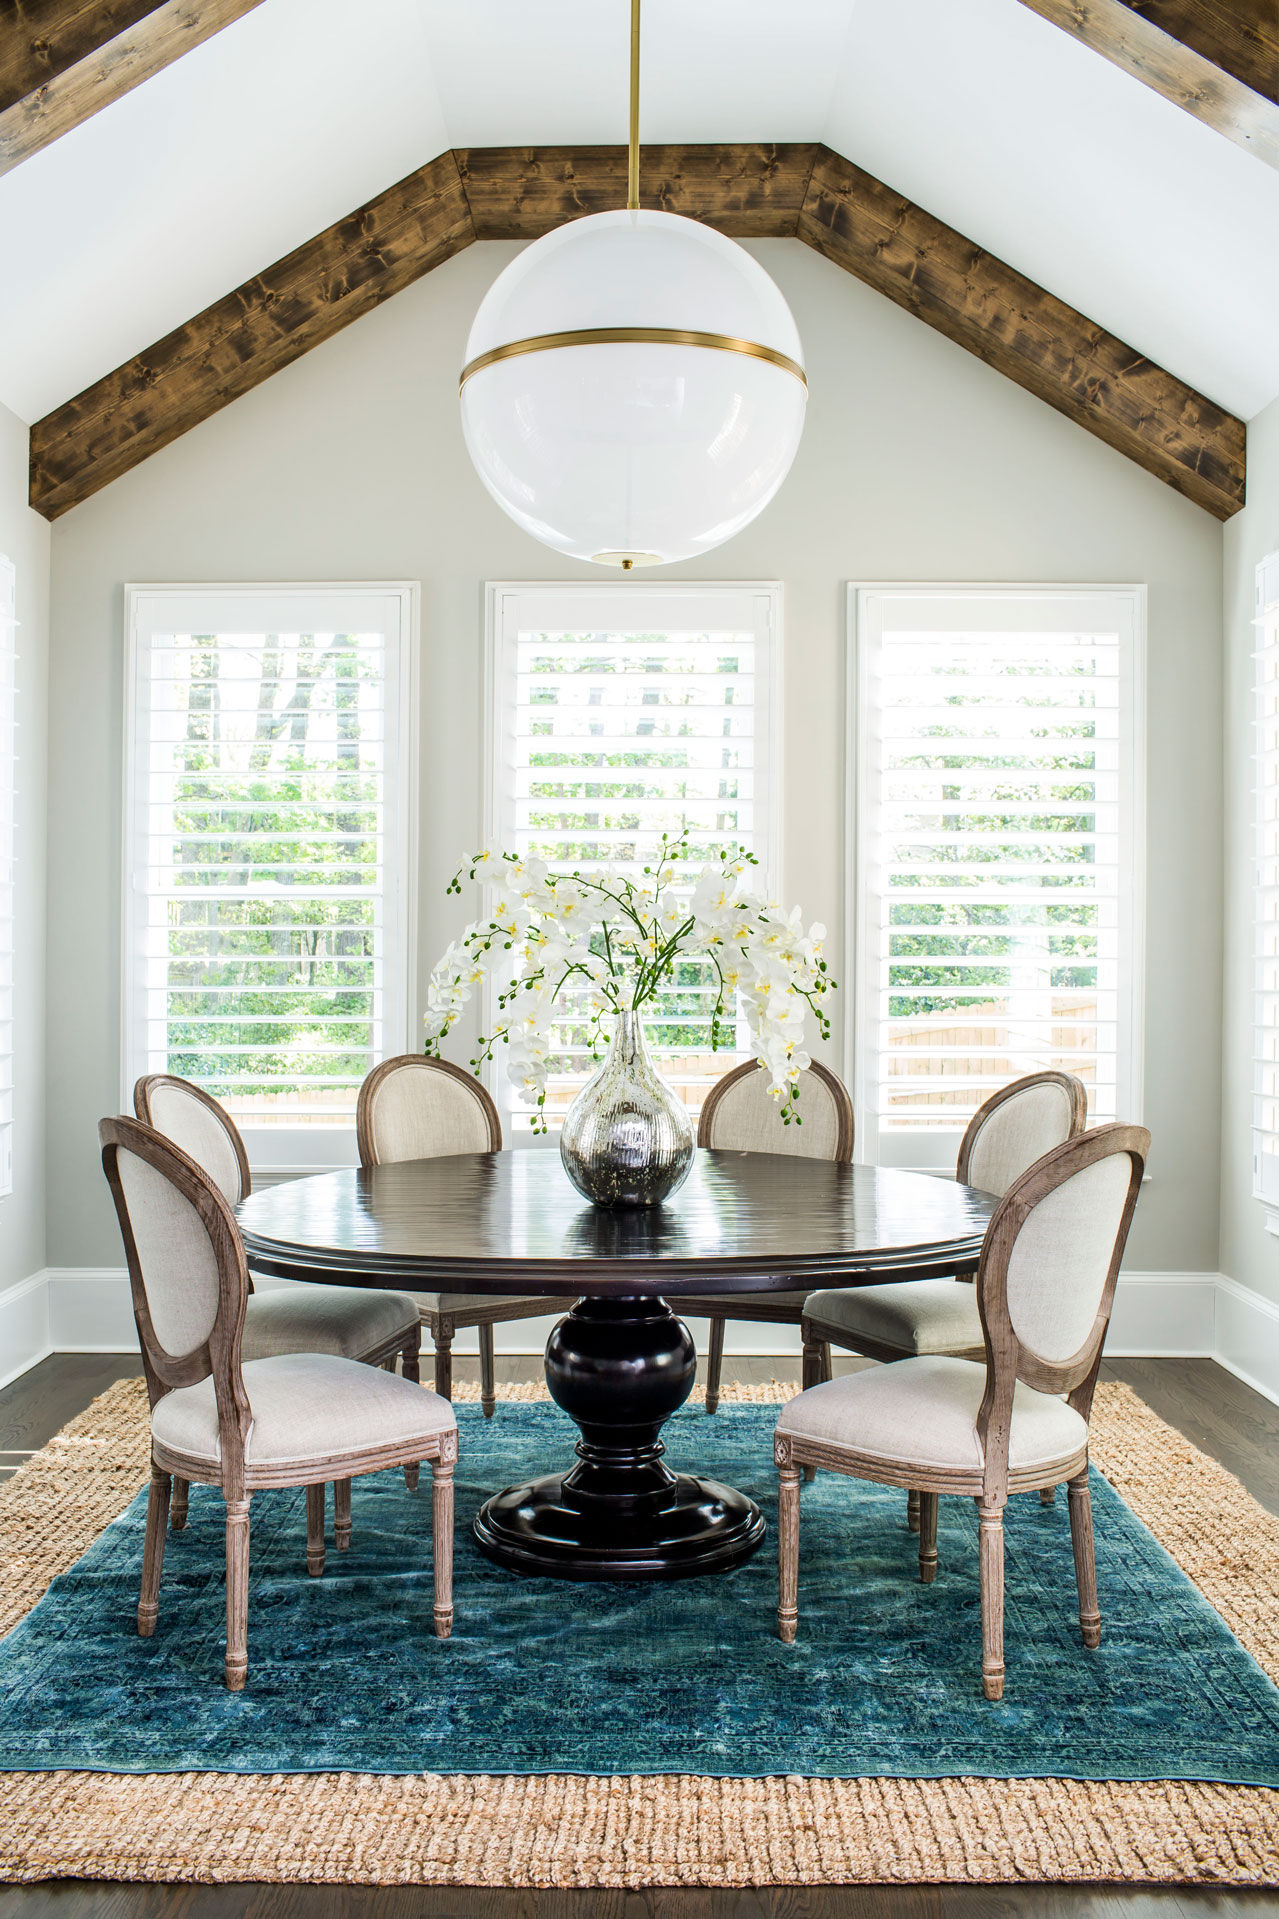 Contemporary breakfast room with layered teal and jute rugs